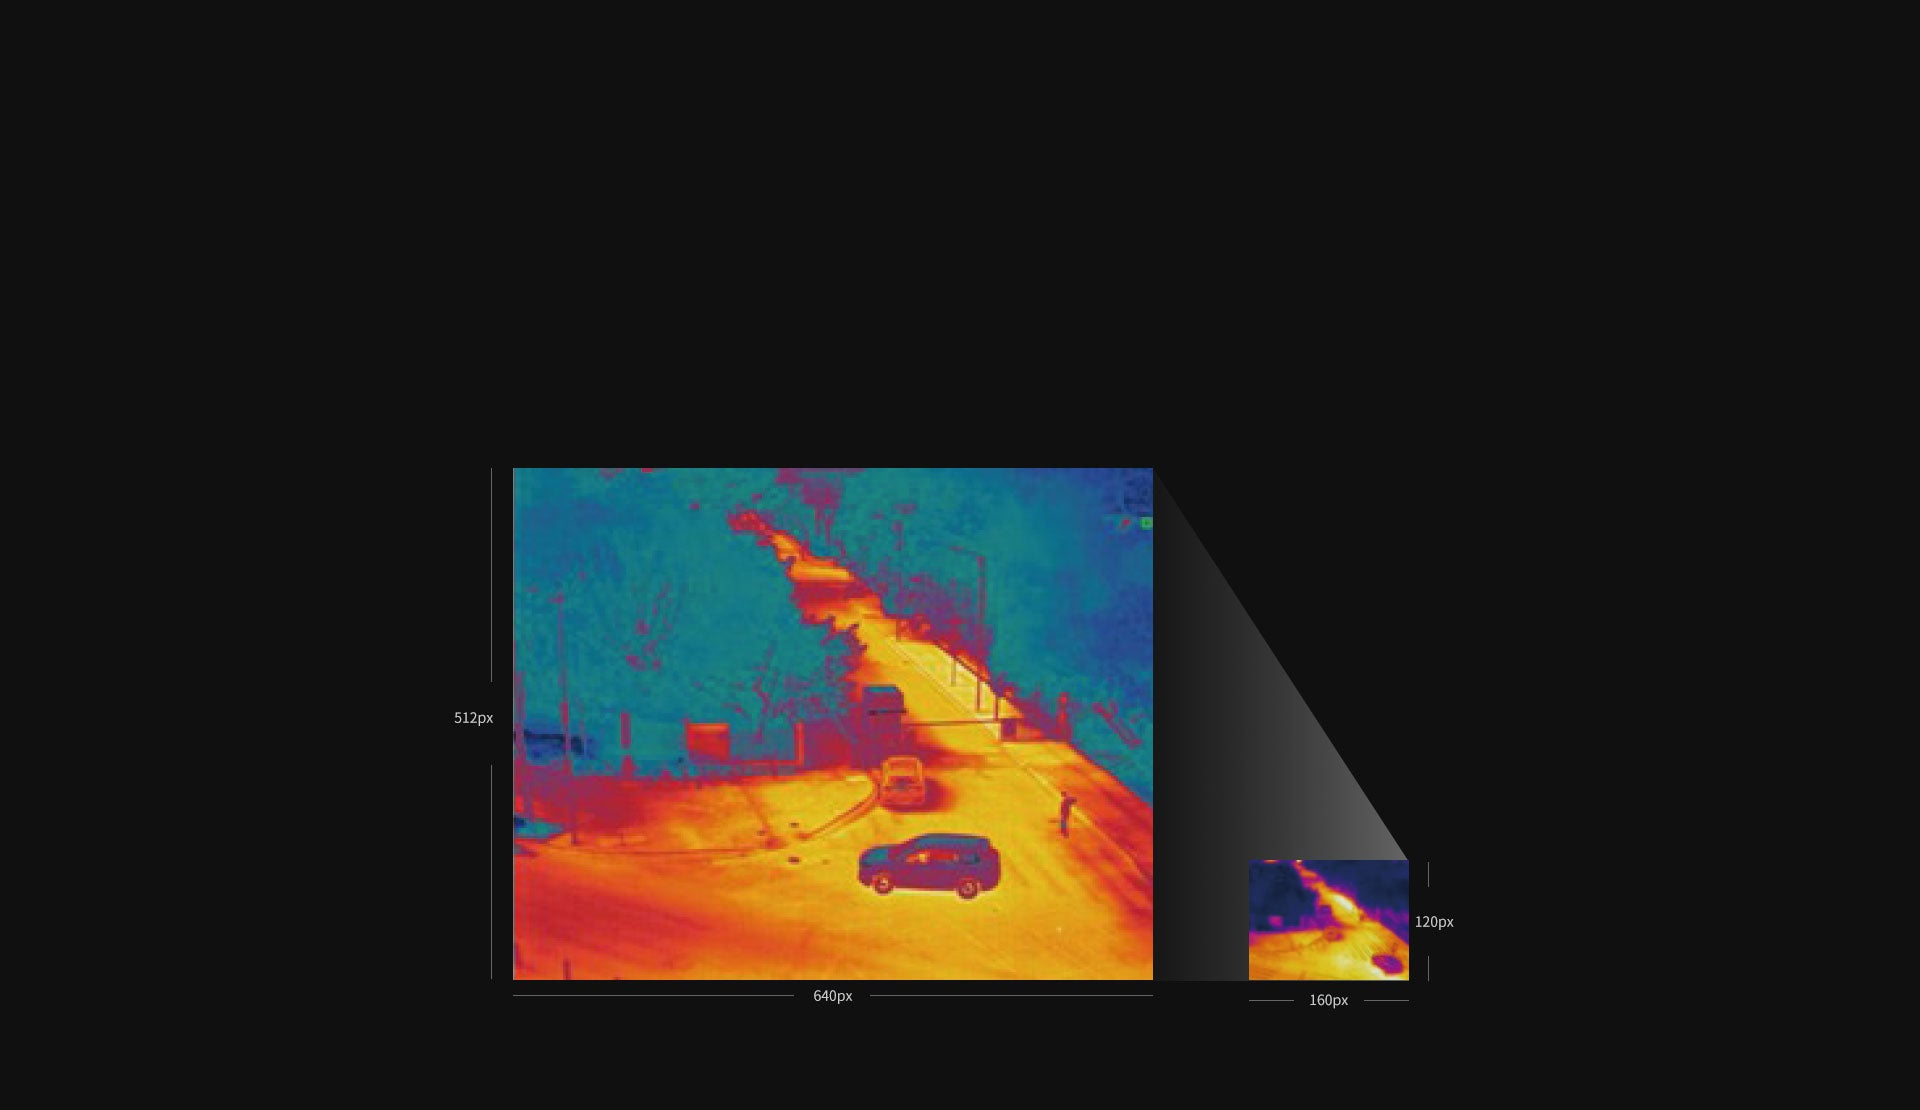 autel evo ii dual thermal image compared